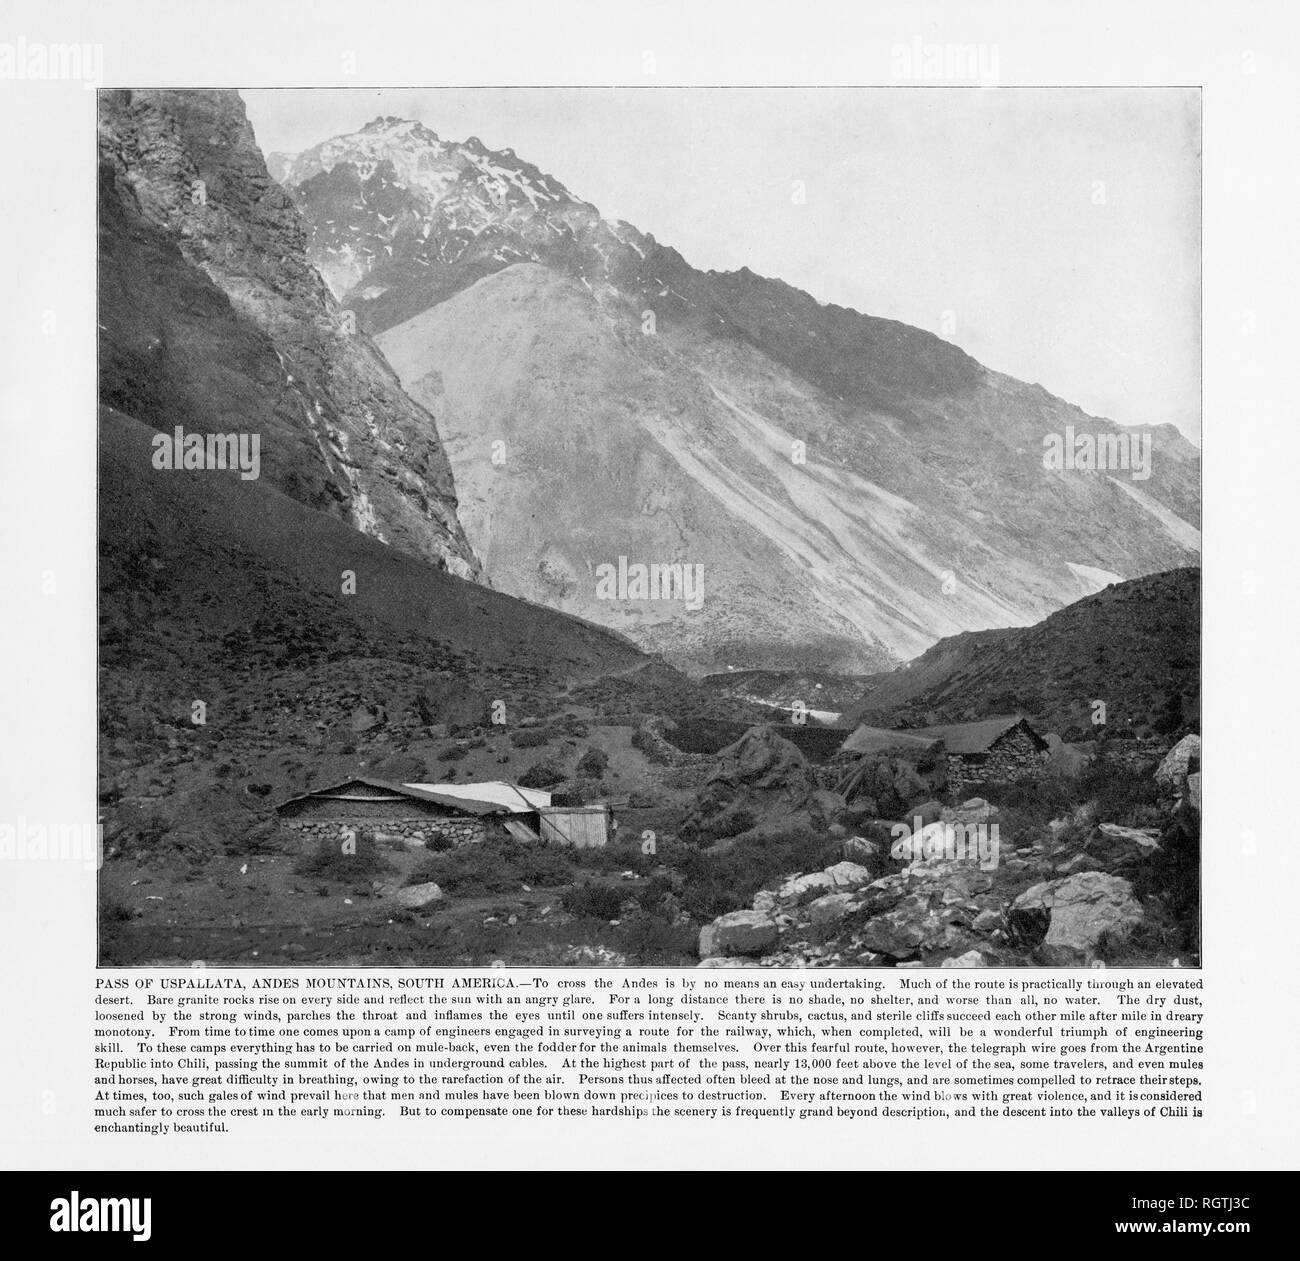 Pass of Uspallata, Andes Mountain, South America, Antique South American Photograph, 1893 - Stock Image